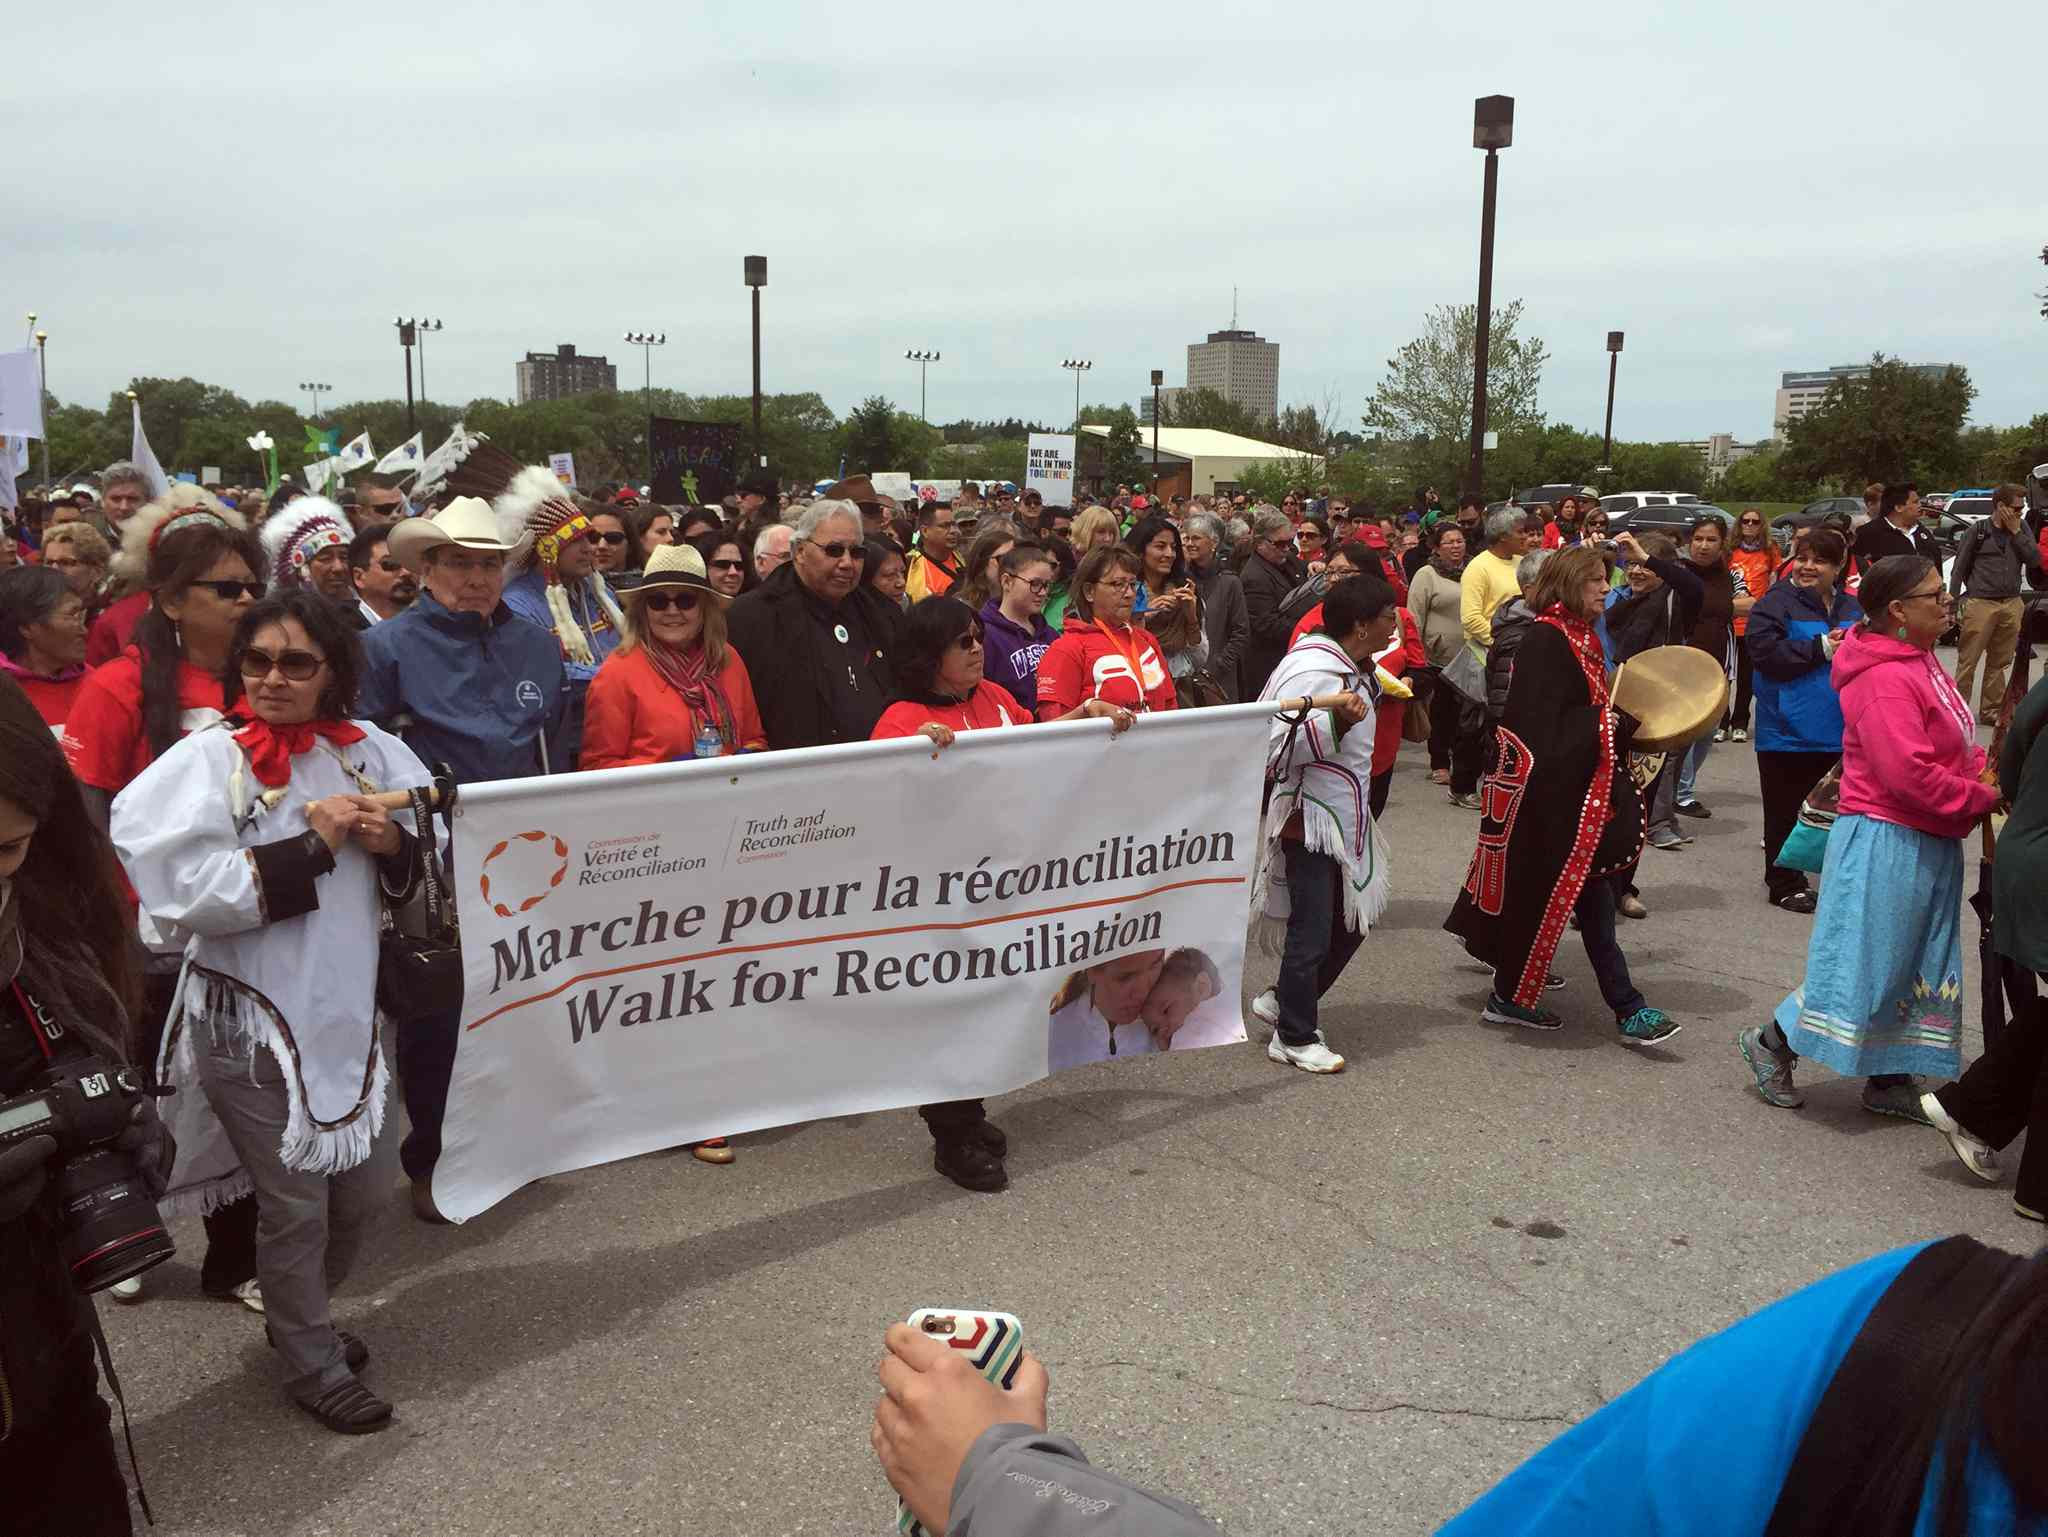 An estimated 10,000 people participated in the symbolic Walk for Reconciliation in the nation's capital.